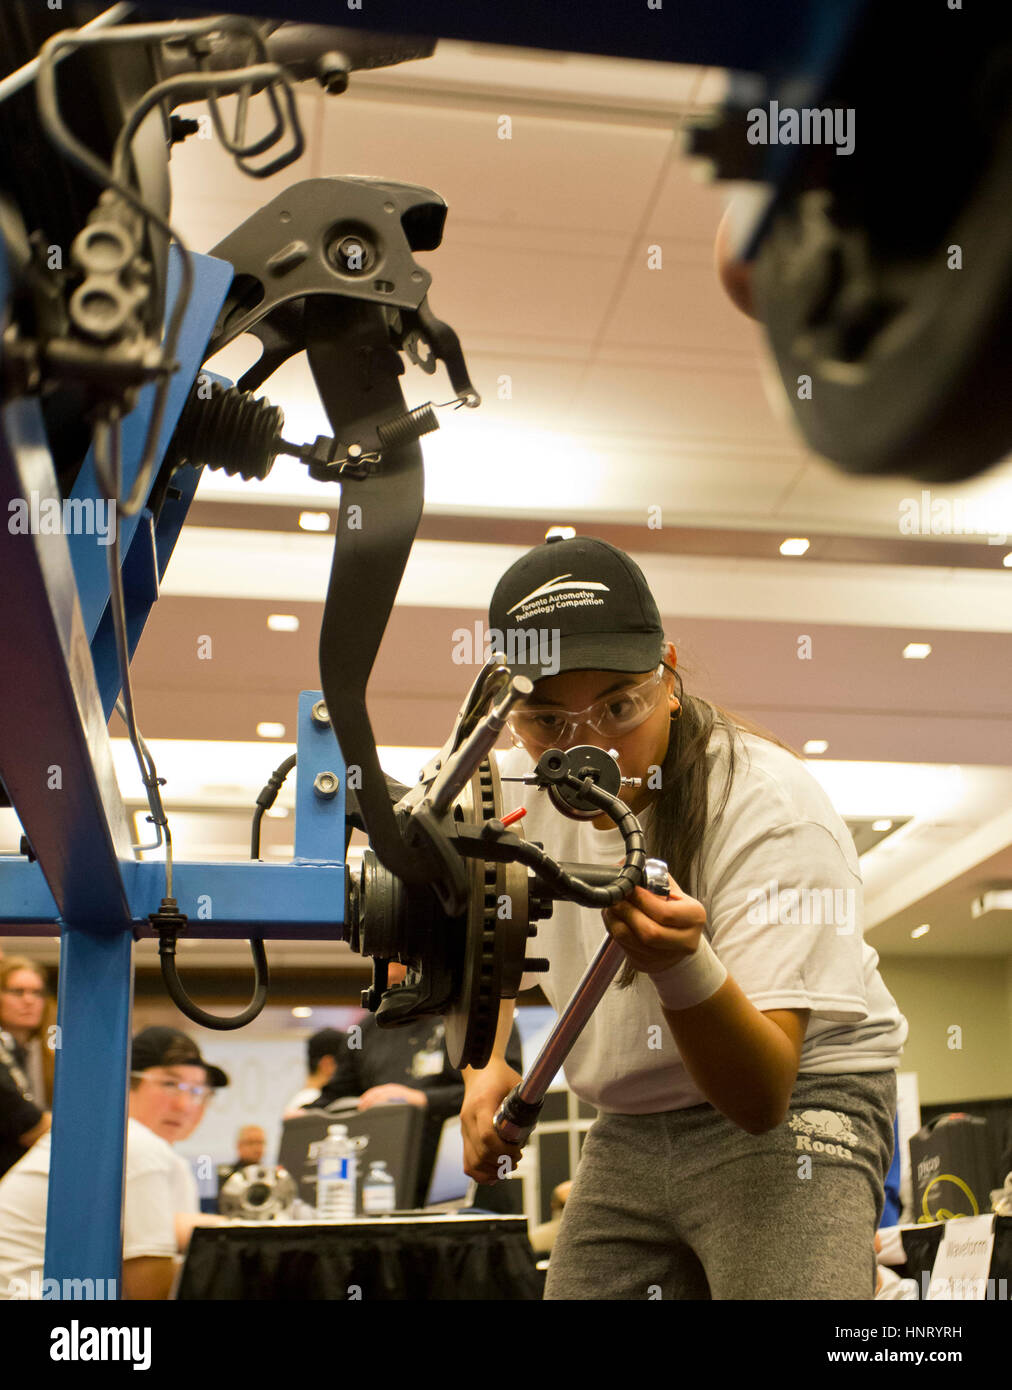 Toronto, Canada. 15th Feb, 2017. A competitor takes a brake system test during the 2017 Toronto Automotive Technology - Stock Image